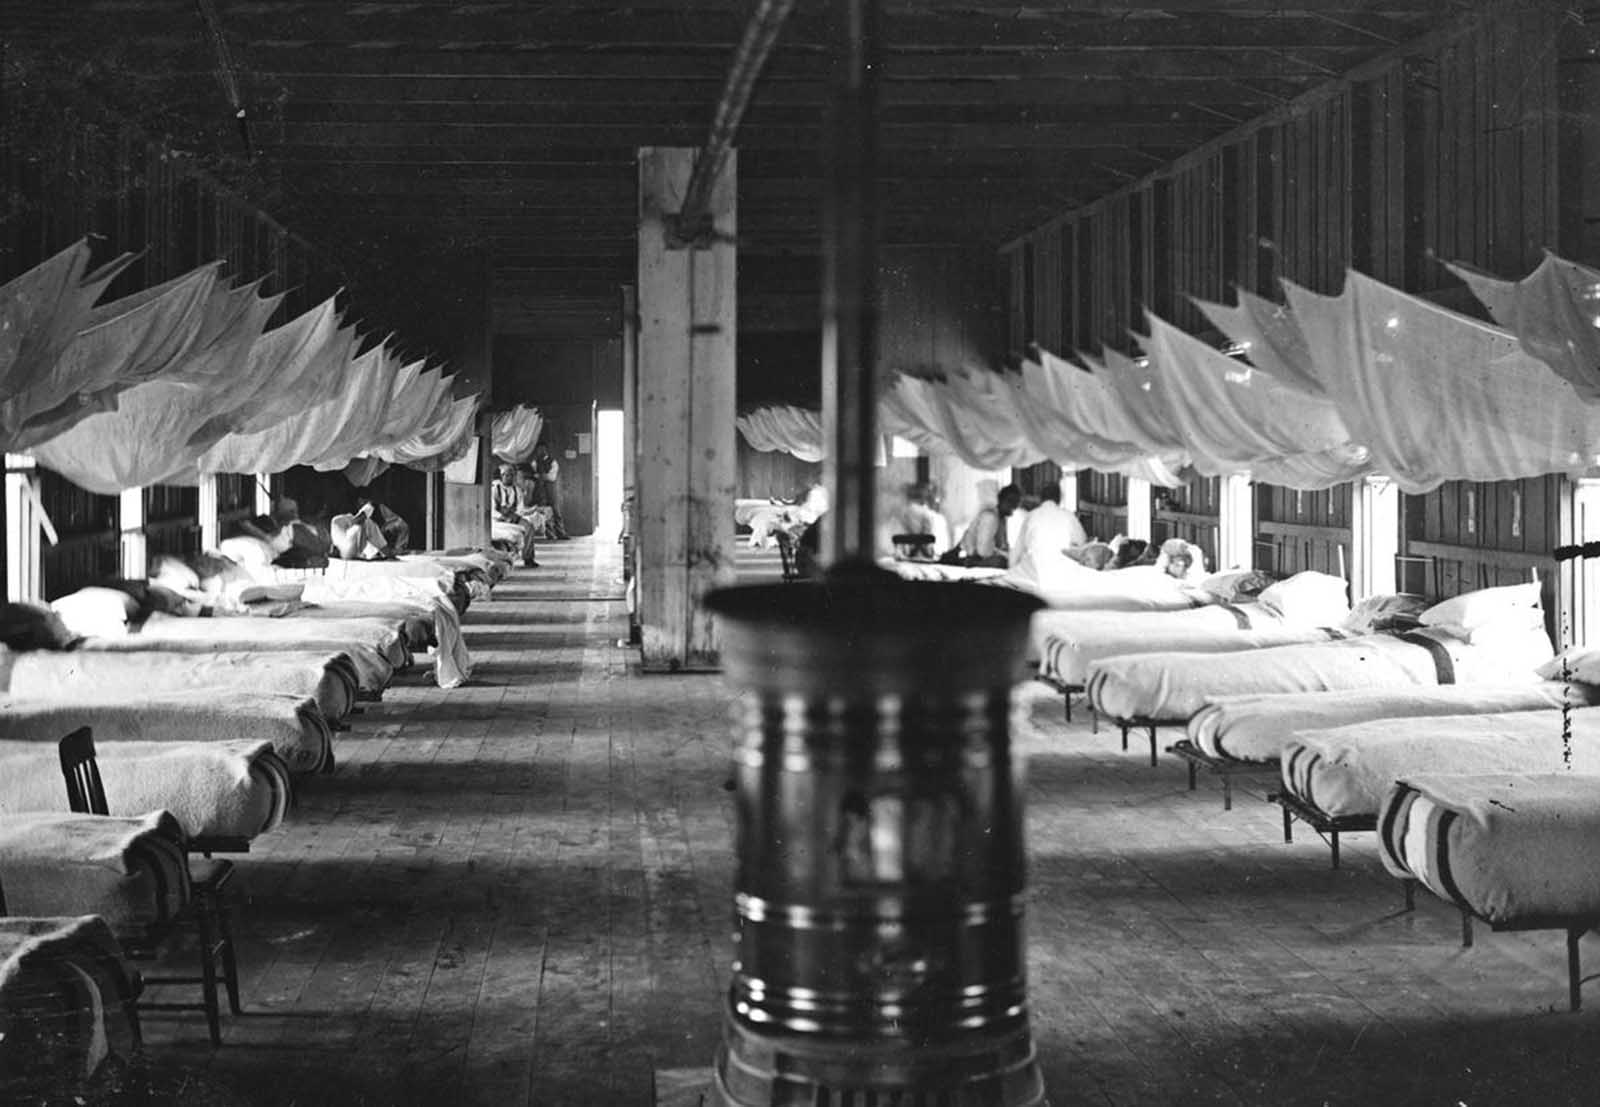 Interior of a ward of Washington D.C.'s Harewood General Hospital in 1864. Harewood opened in September 1862 and closed in May 1866, after the end of the war.